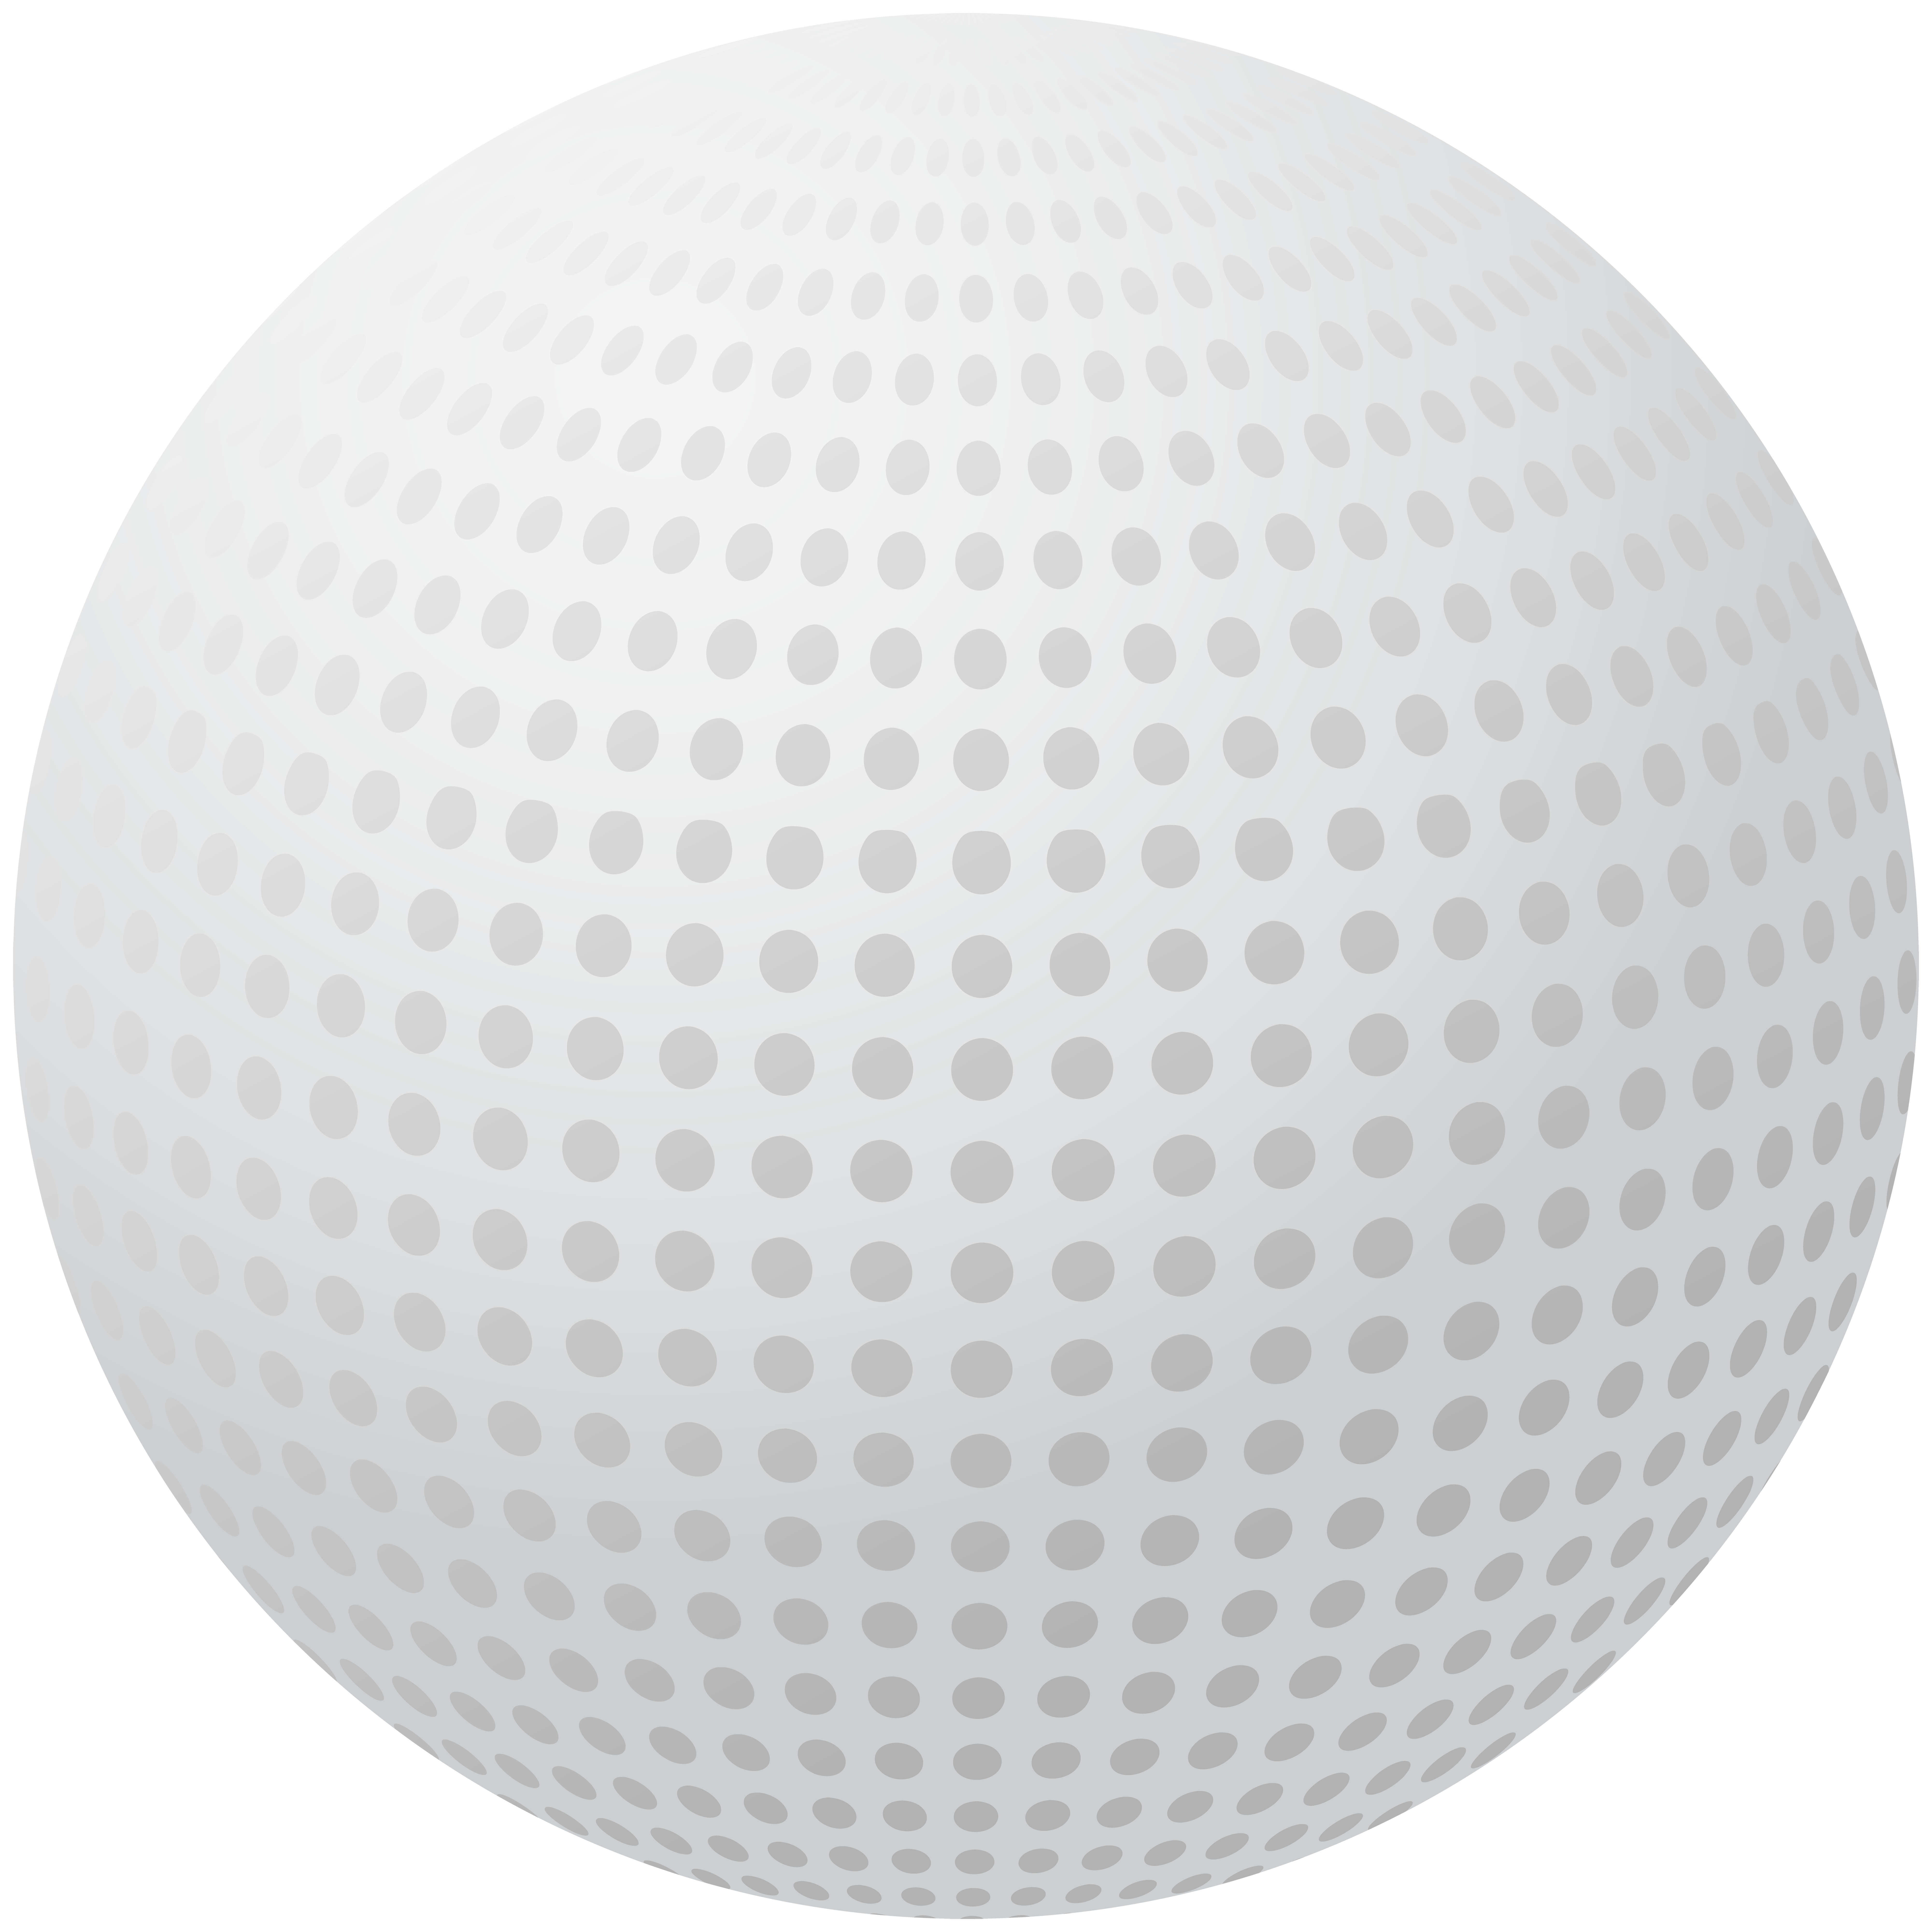 Golf ball png clip. Cube clipart sphere